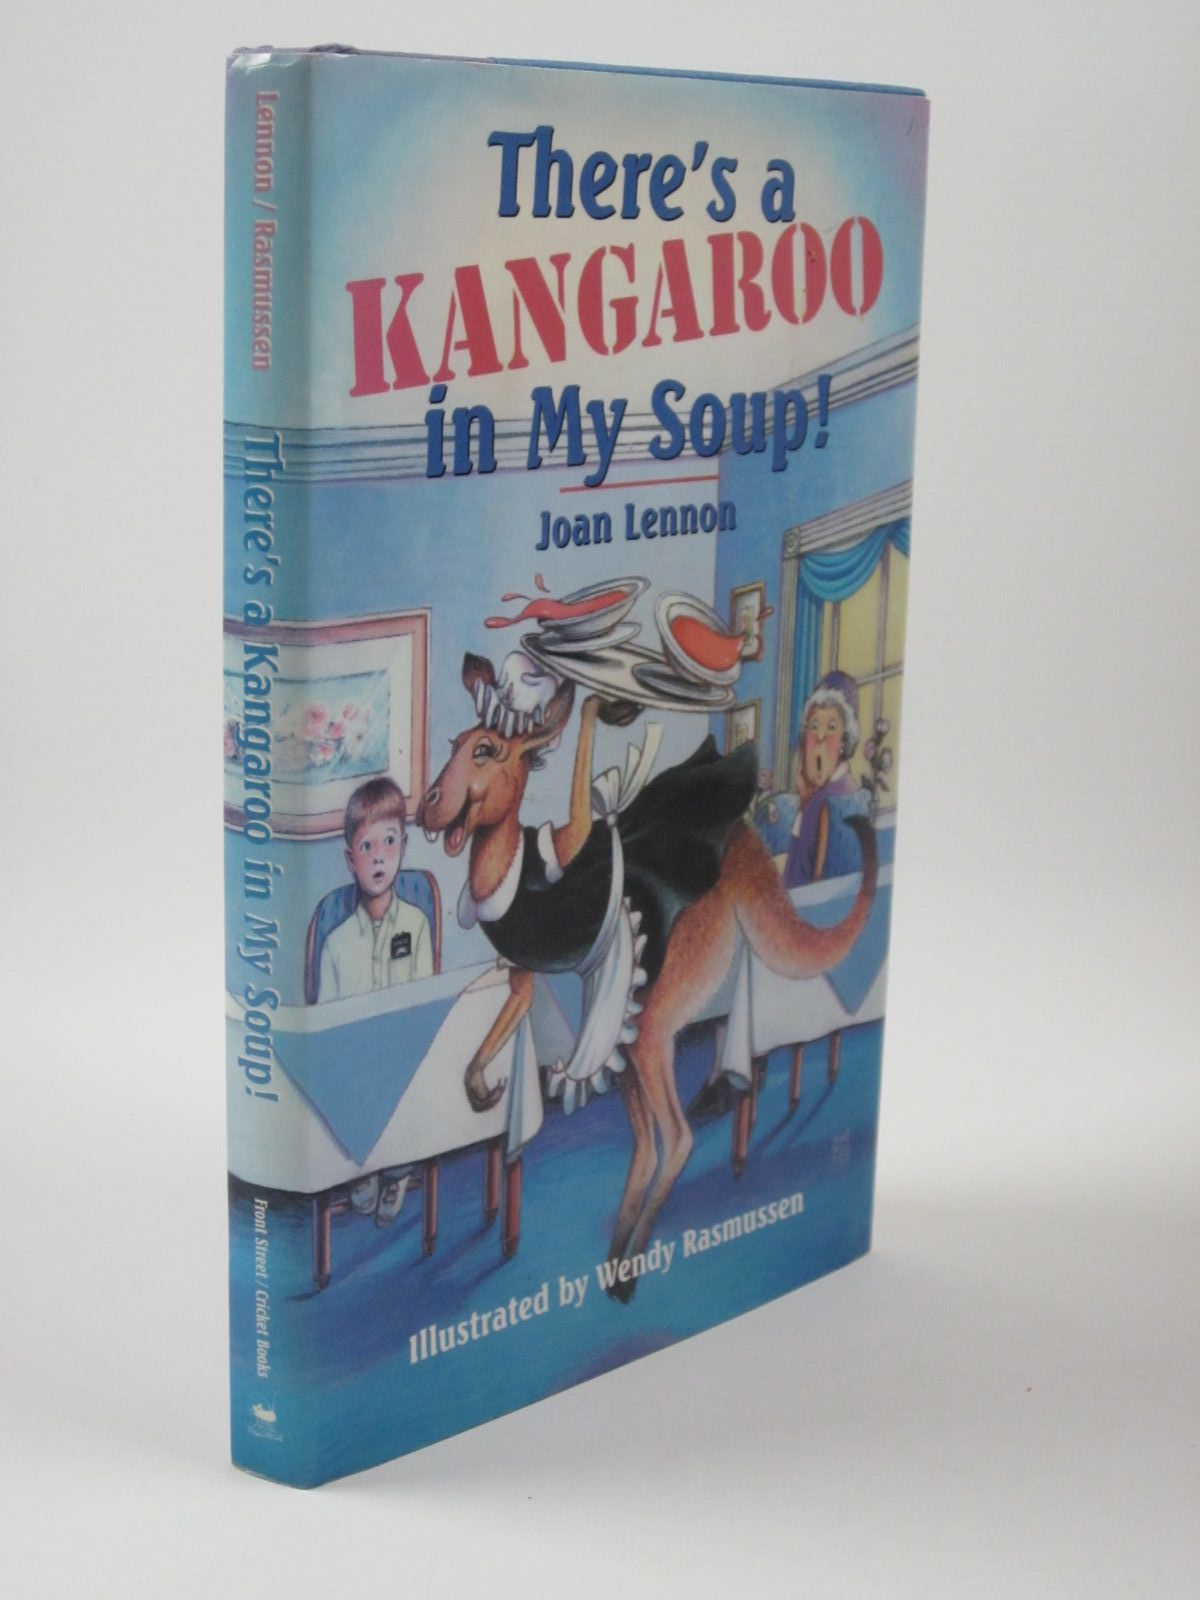 Photo of THERE'S A KANGAROO IN MY SOUP! written by Lennon, Joan illustrated by Rasmussen, Wendy published by Cricket Books (STOCK CODE: 1401554)  for sale by Stella & Rose's Books